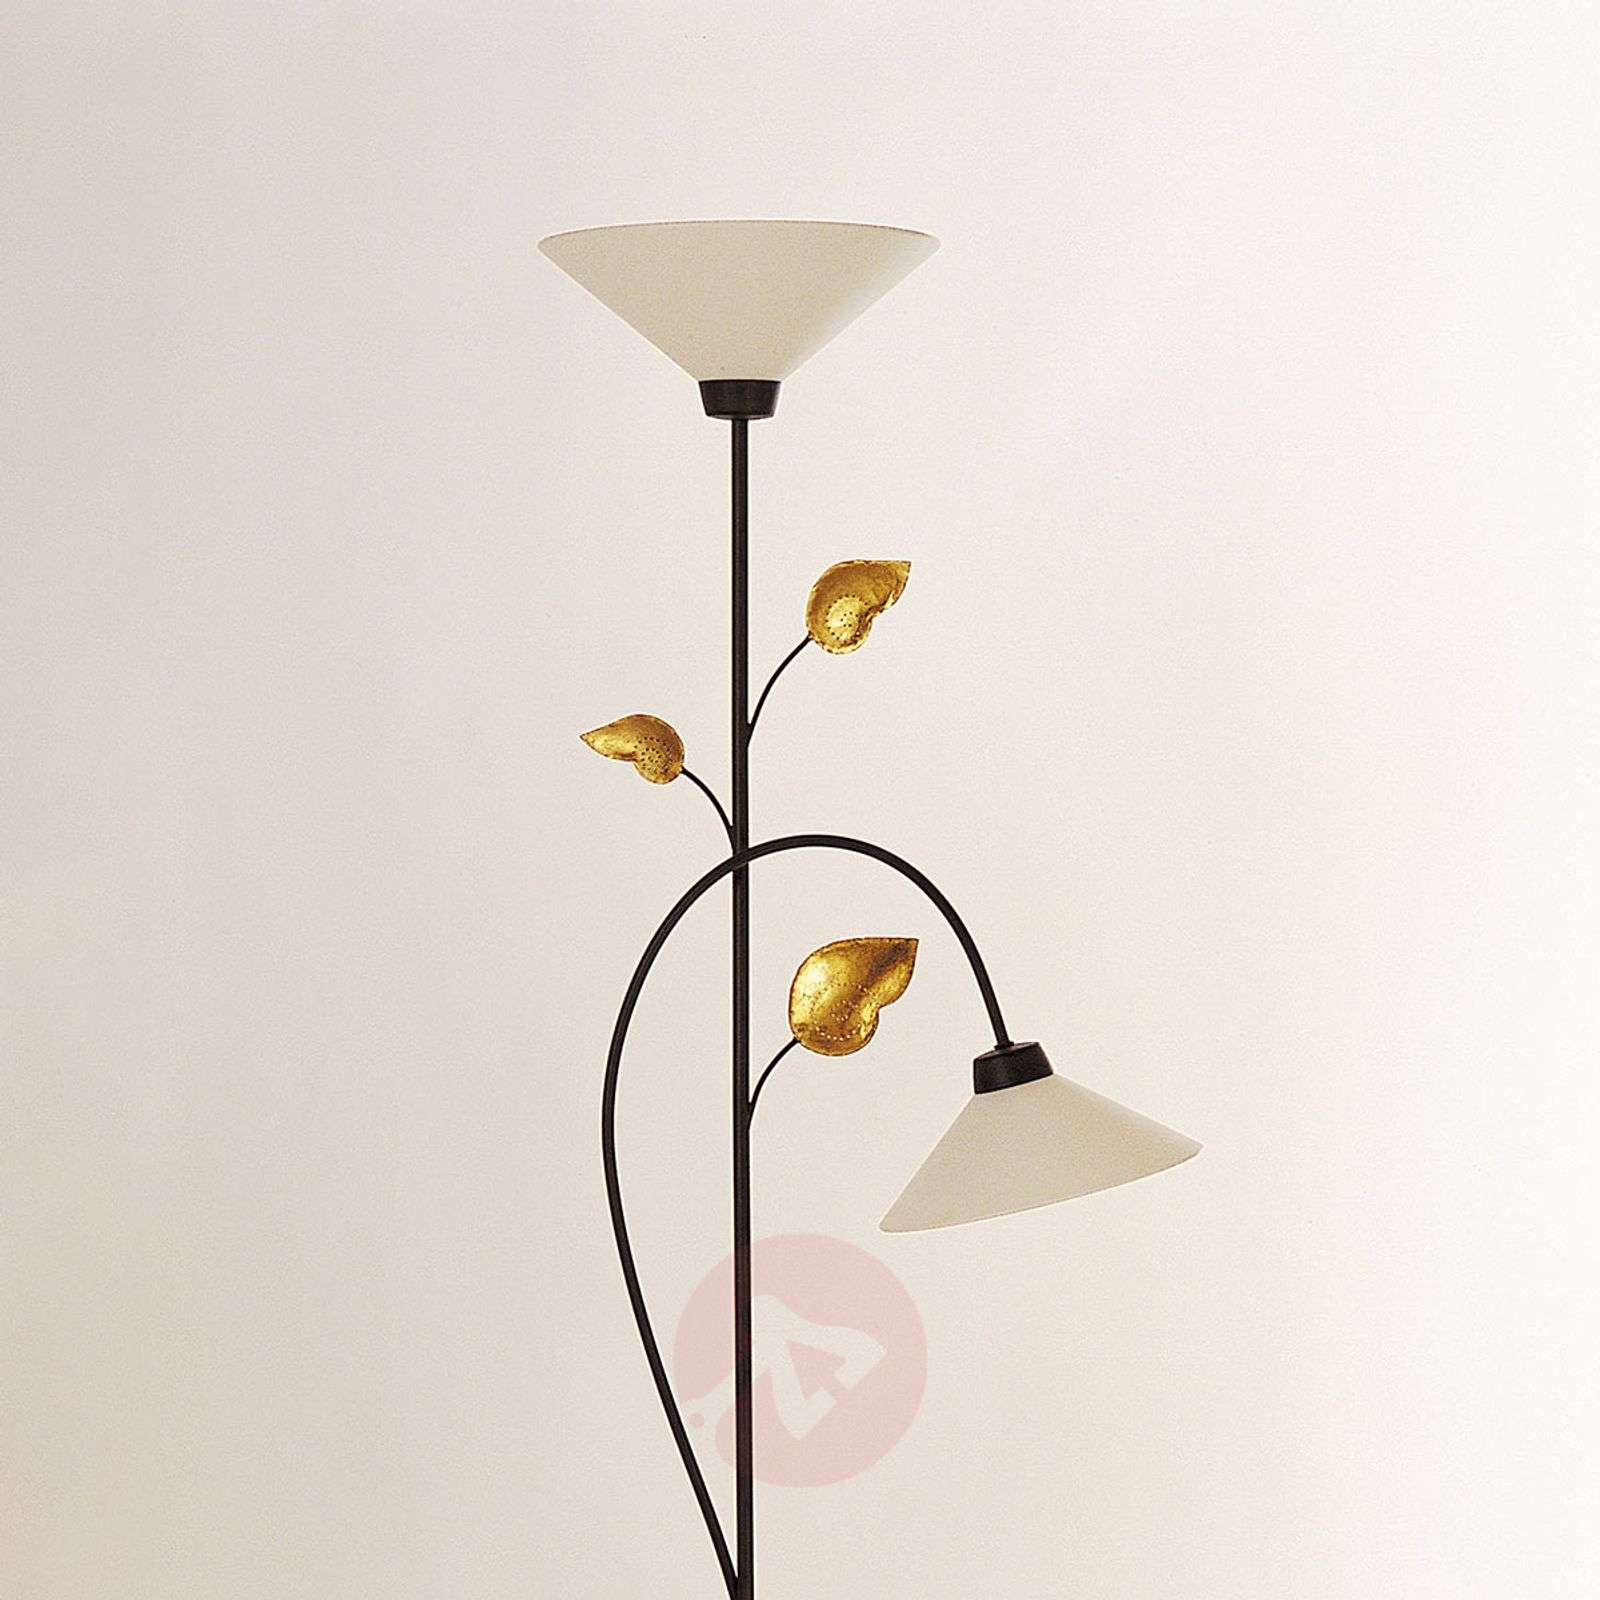 Appealing floor lamp TRE FOGLIE dimmable-4512030-01